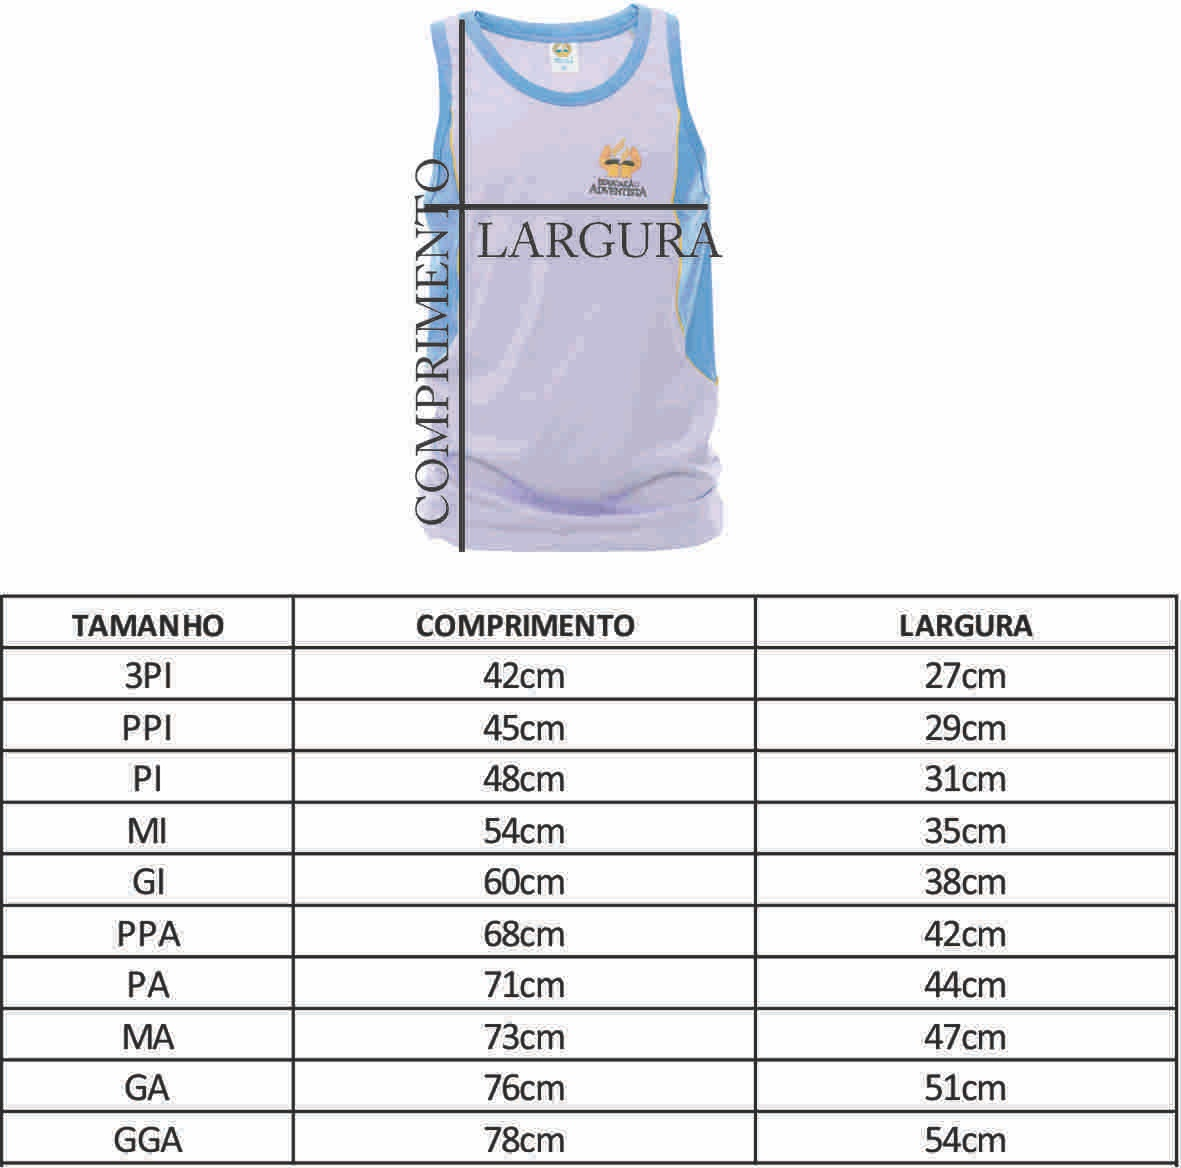 Camiseta Regata - PPI ( 4 )